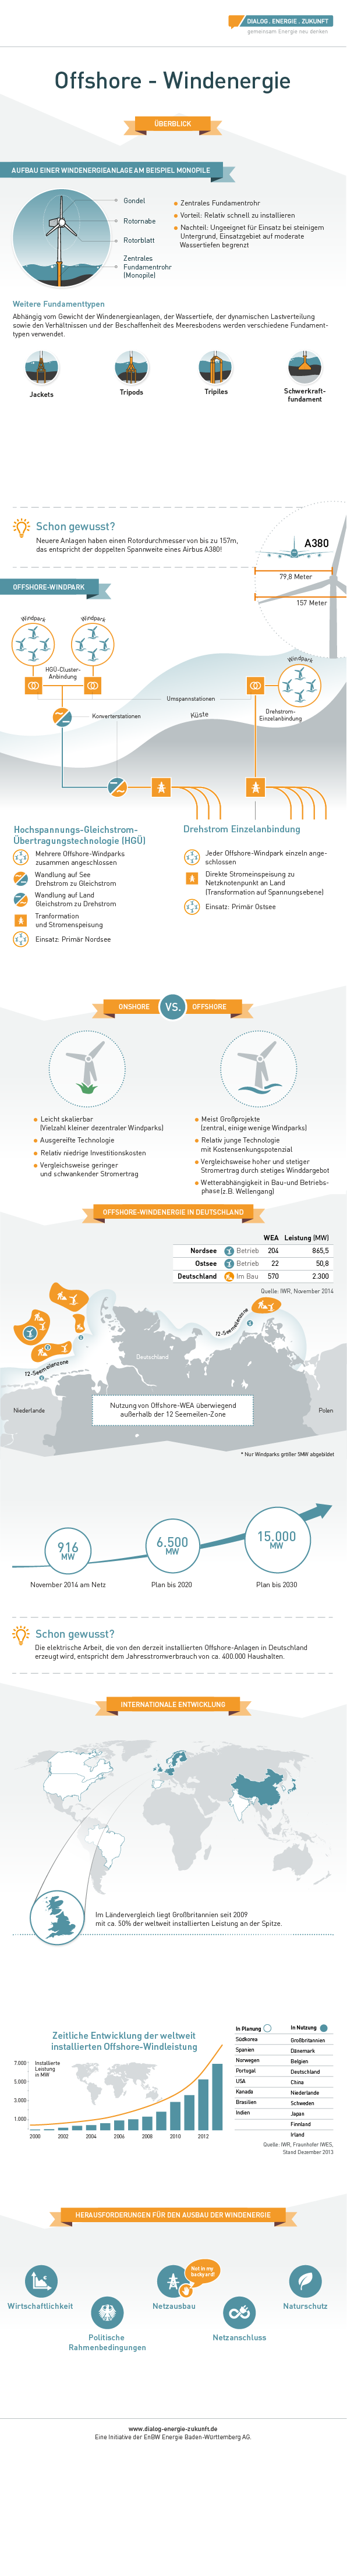 infografik offshore windkraft